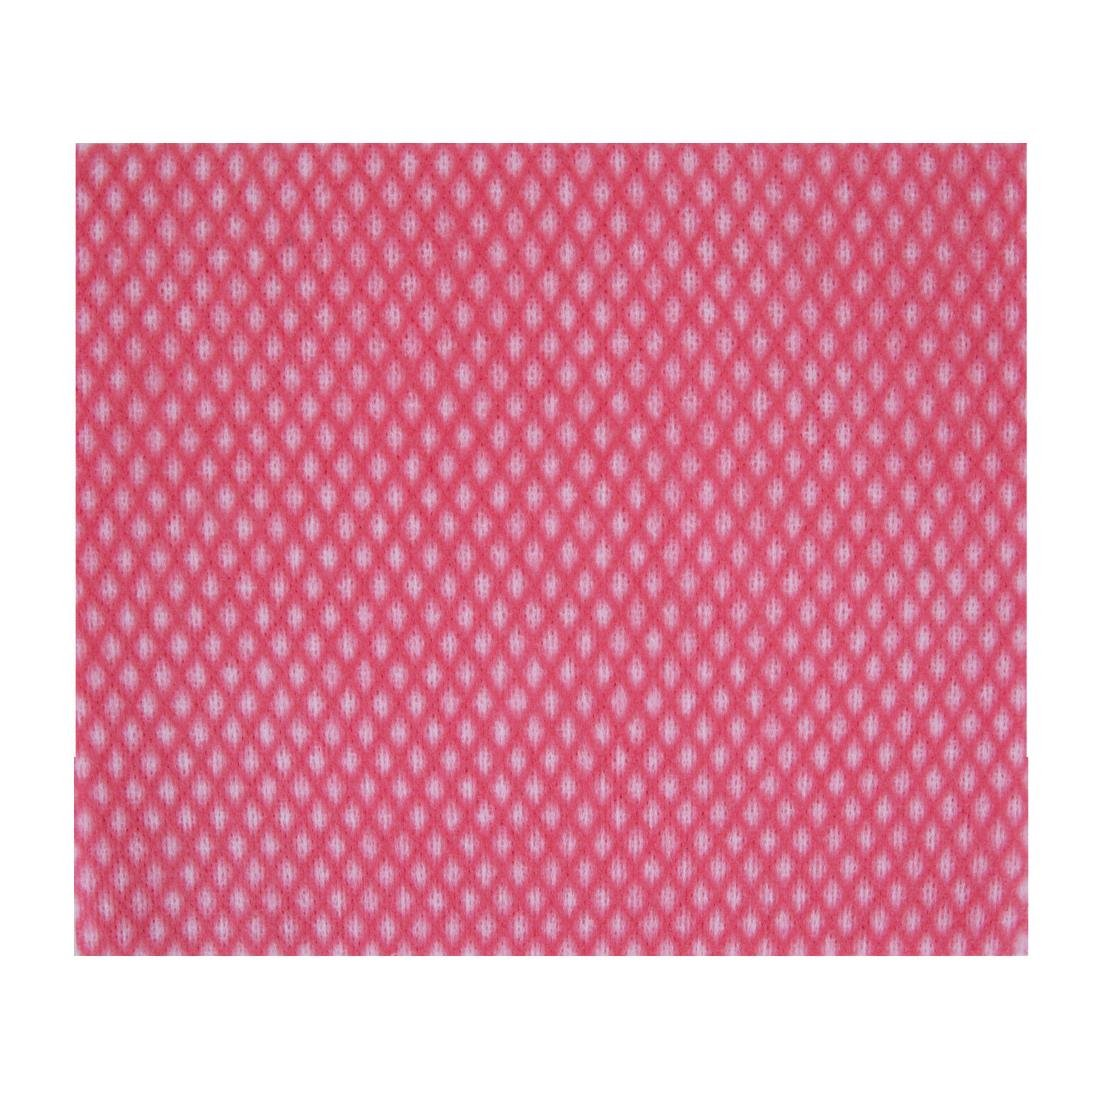 Jantex Solonet Cloths Red (Pack of 50)